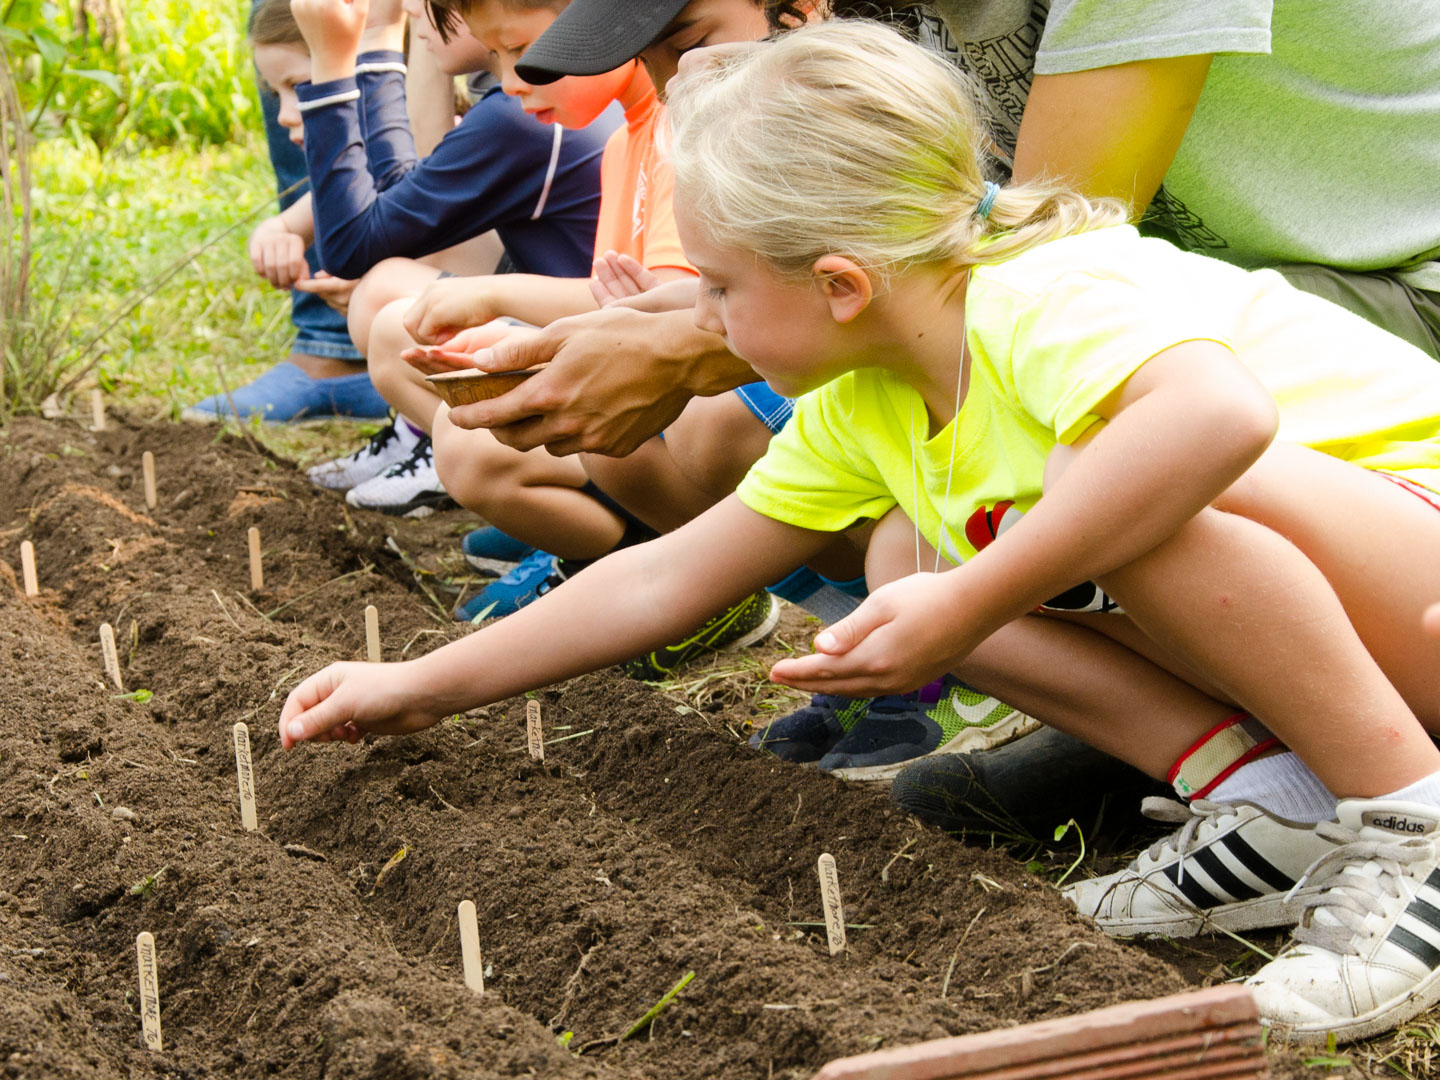 Campers planting seeds in the garden